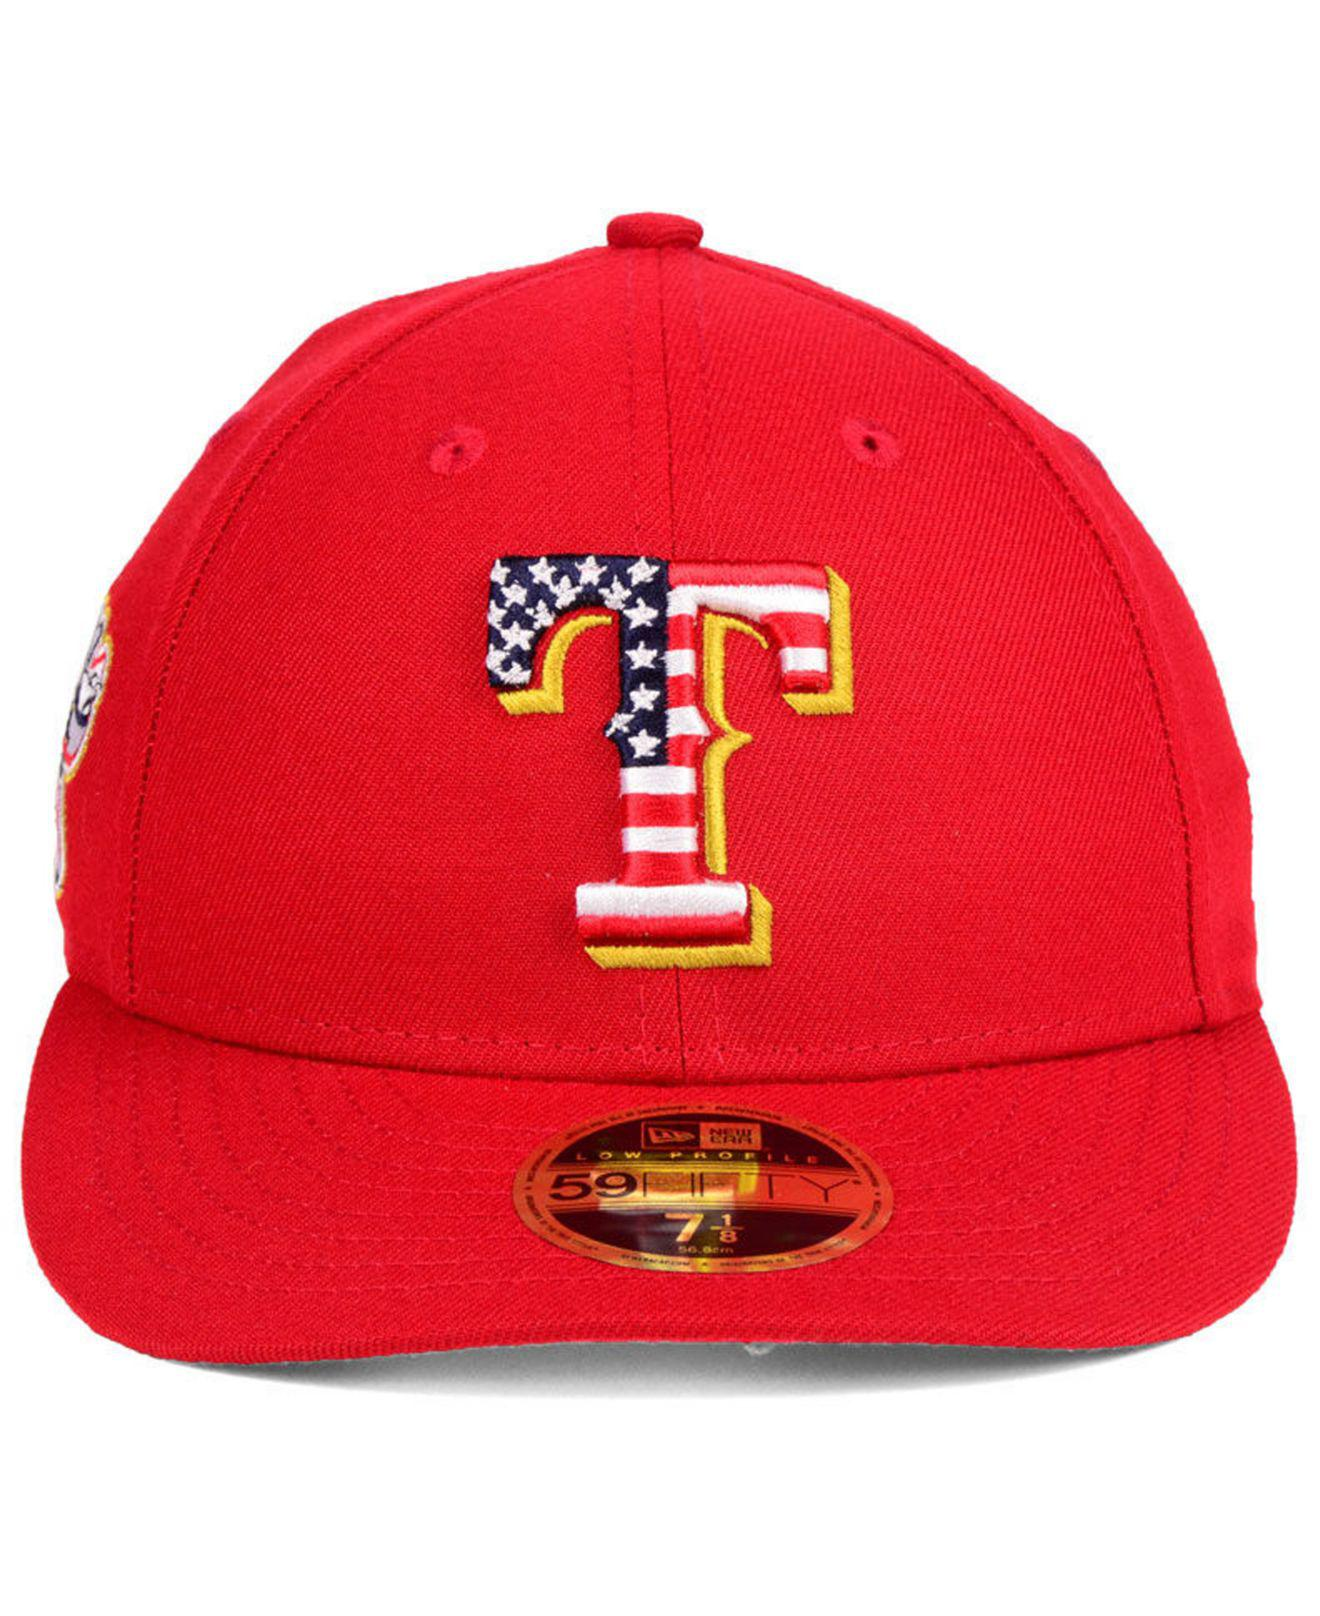 b9cac0e42b1abc ... official store lyst ktz texas rangers stars and stripes low profile  59fifty fitted cap 2018 in